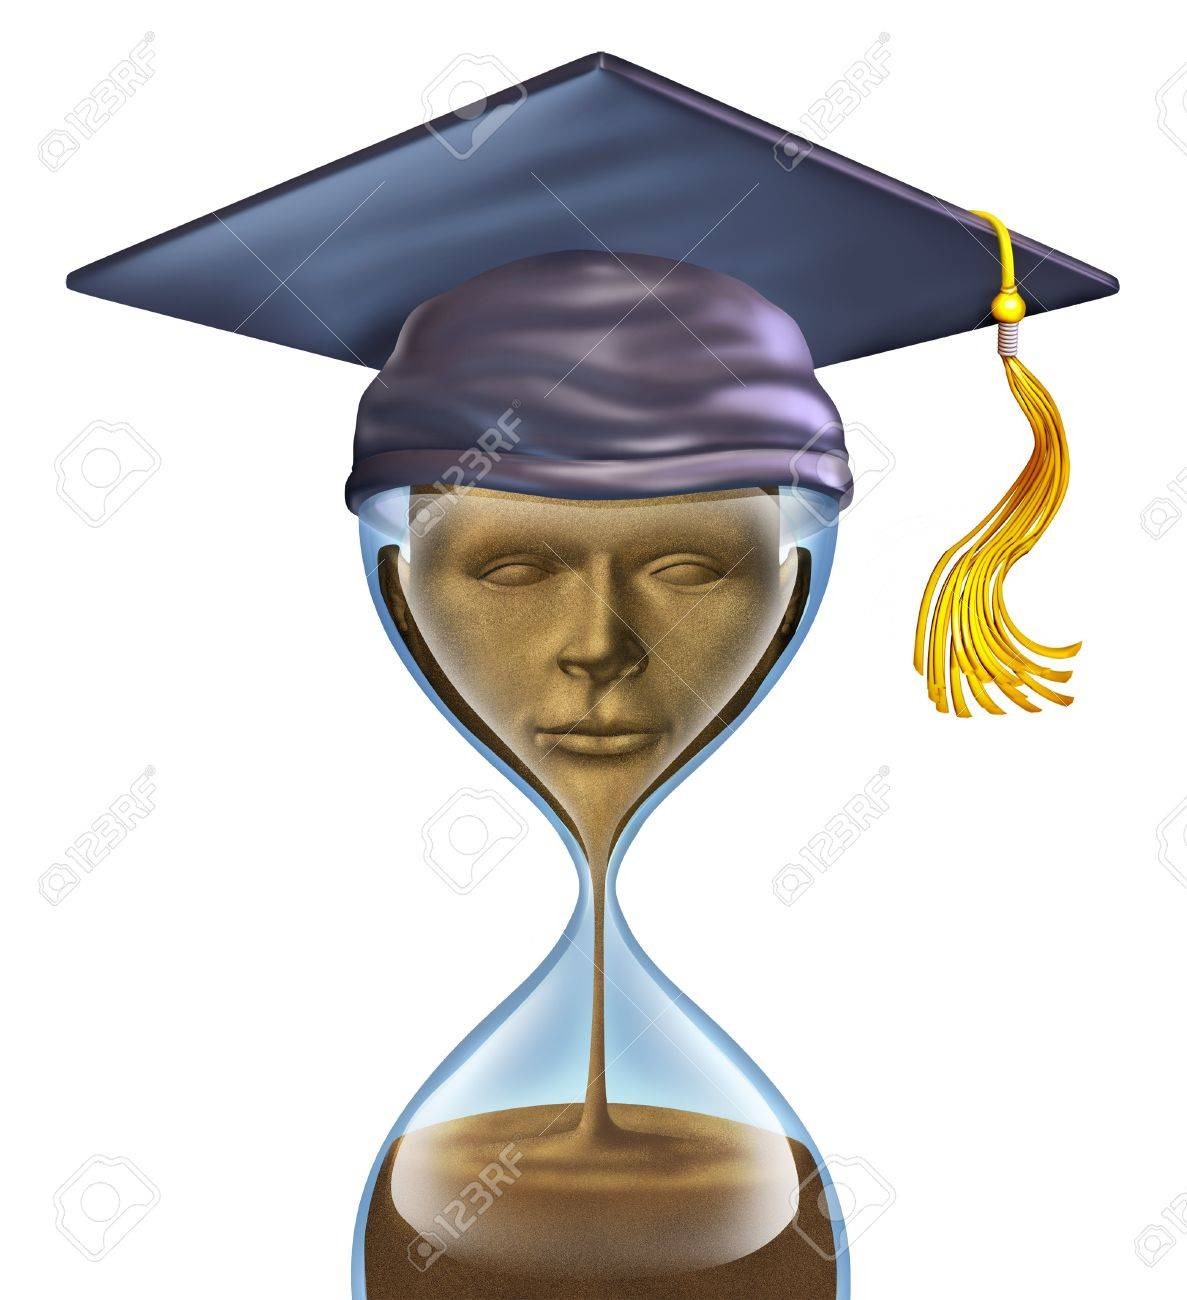 Graduation Countdown With A Mortar Cap On Top Of An Hour Glass